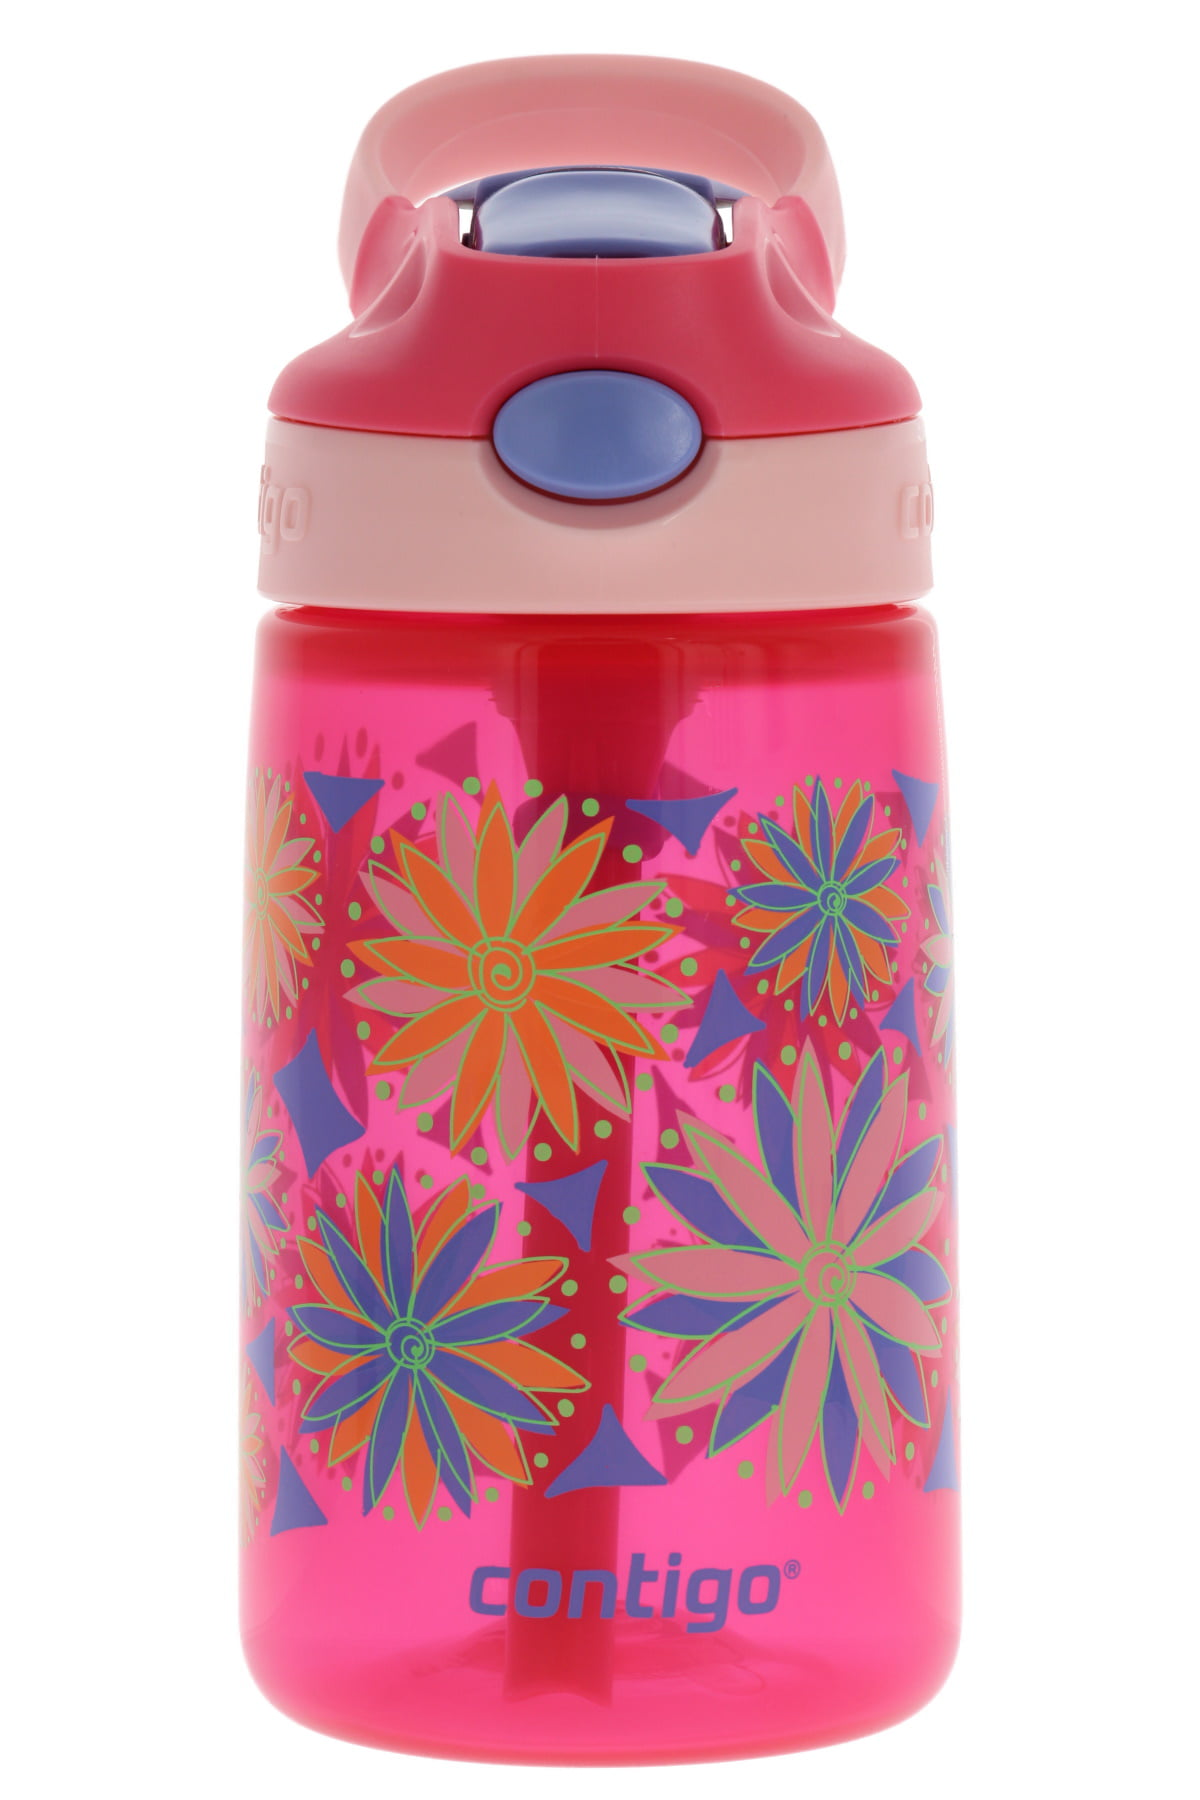 BPA Free Drinks Bottle for Children Wink with Dancer Pink Ideal for School and Sports Contigo Gizmo Flip Autospout Kids Water Bottle with Flip Straw 420 ml Leakproof Flask